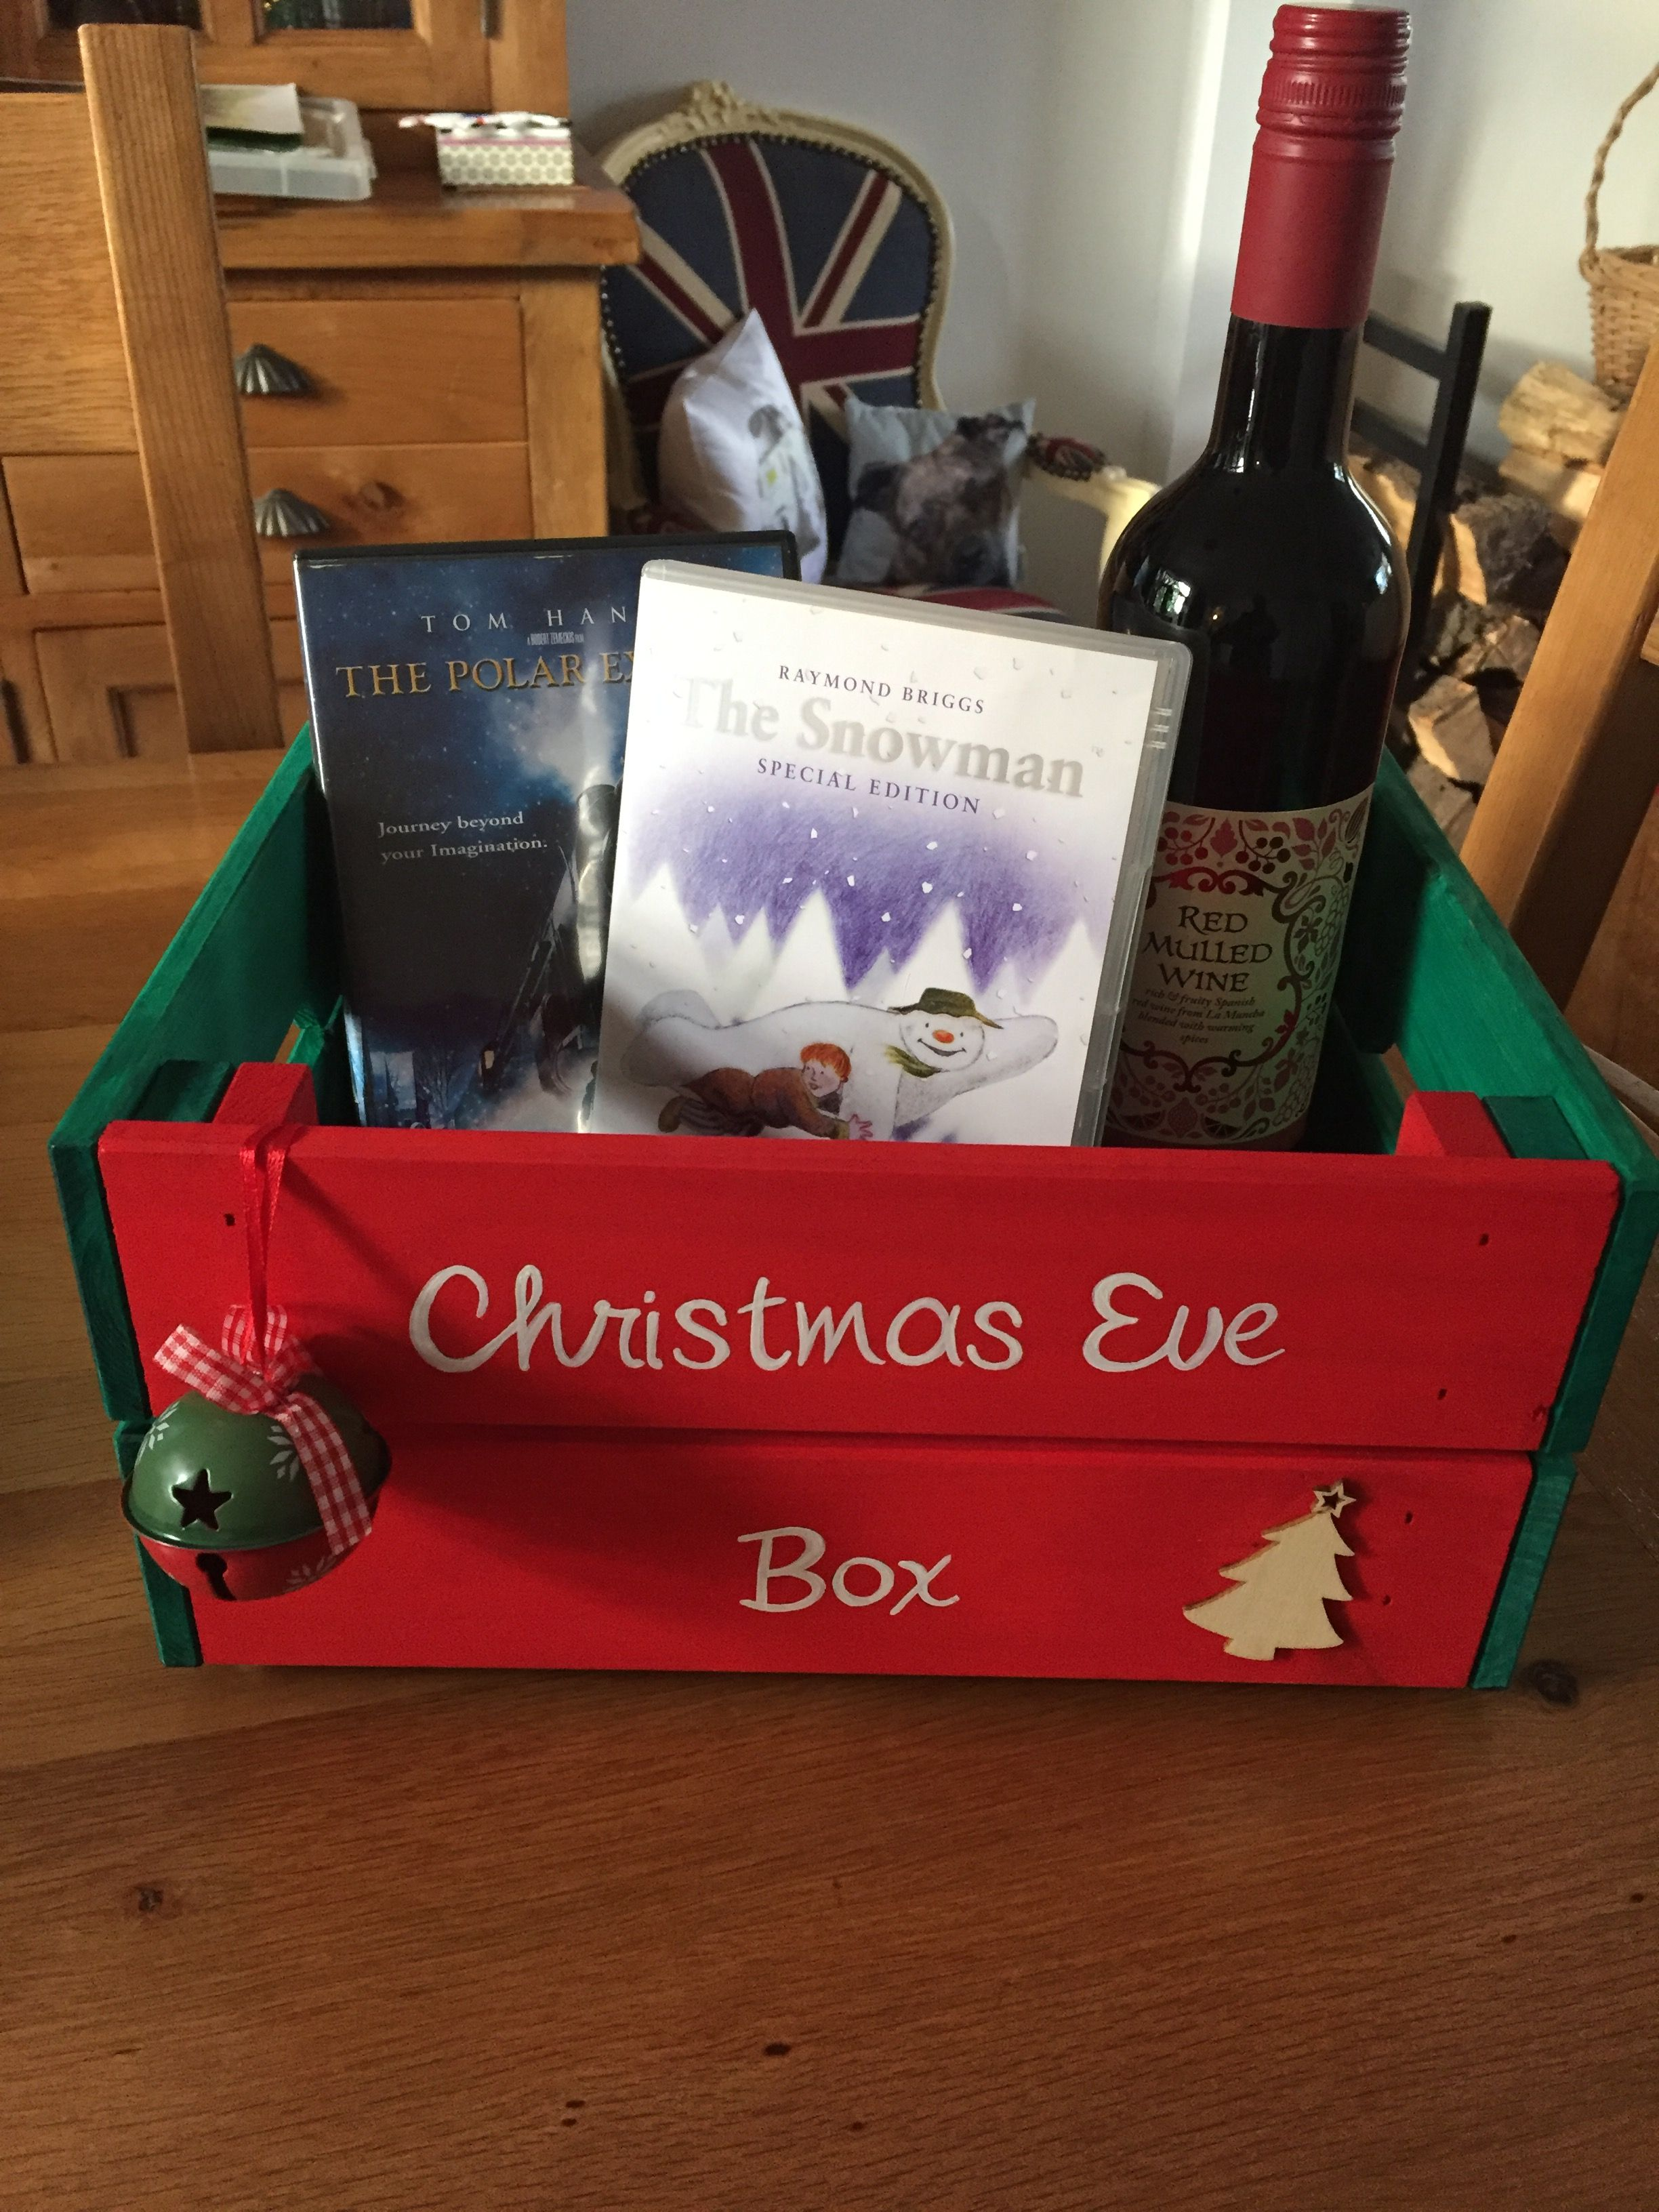 Getting Festive Ready For Christmas Eve Have A Christmas Eve Box Filled With All Your Favo Christmas Eve Box Christmas Eve Crate Christmas Eve Box For Kids